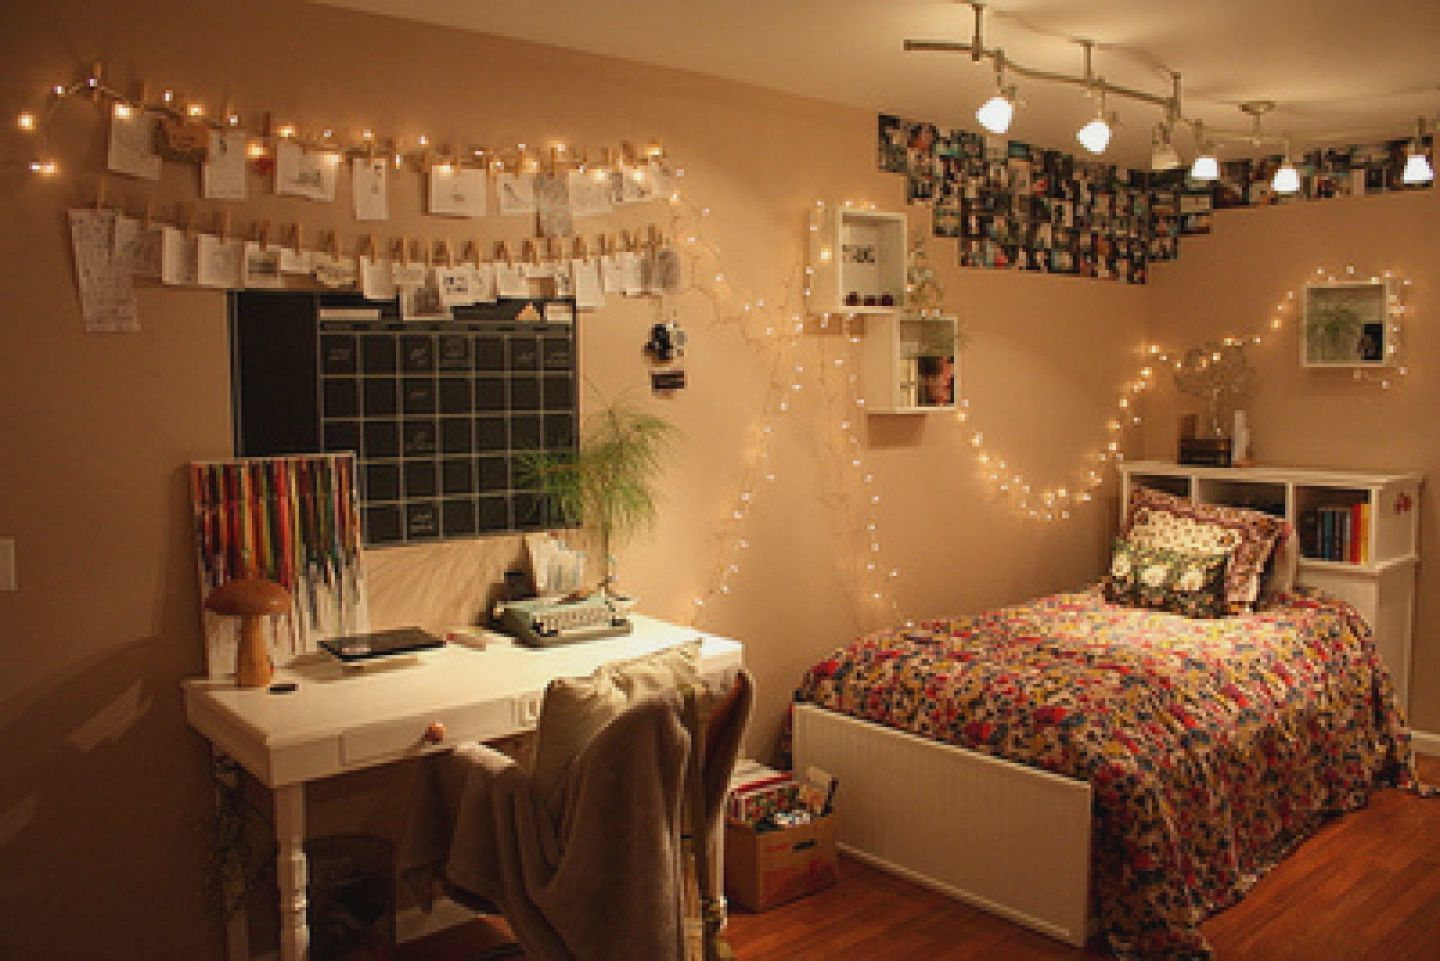 Bedroom Bedroom Decorating Ideas Teenage Girls Tumblr Bedrooms Home